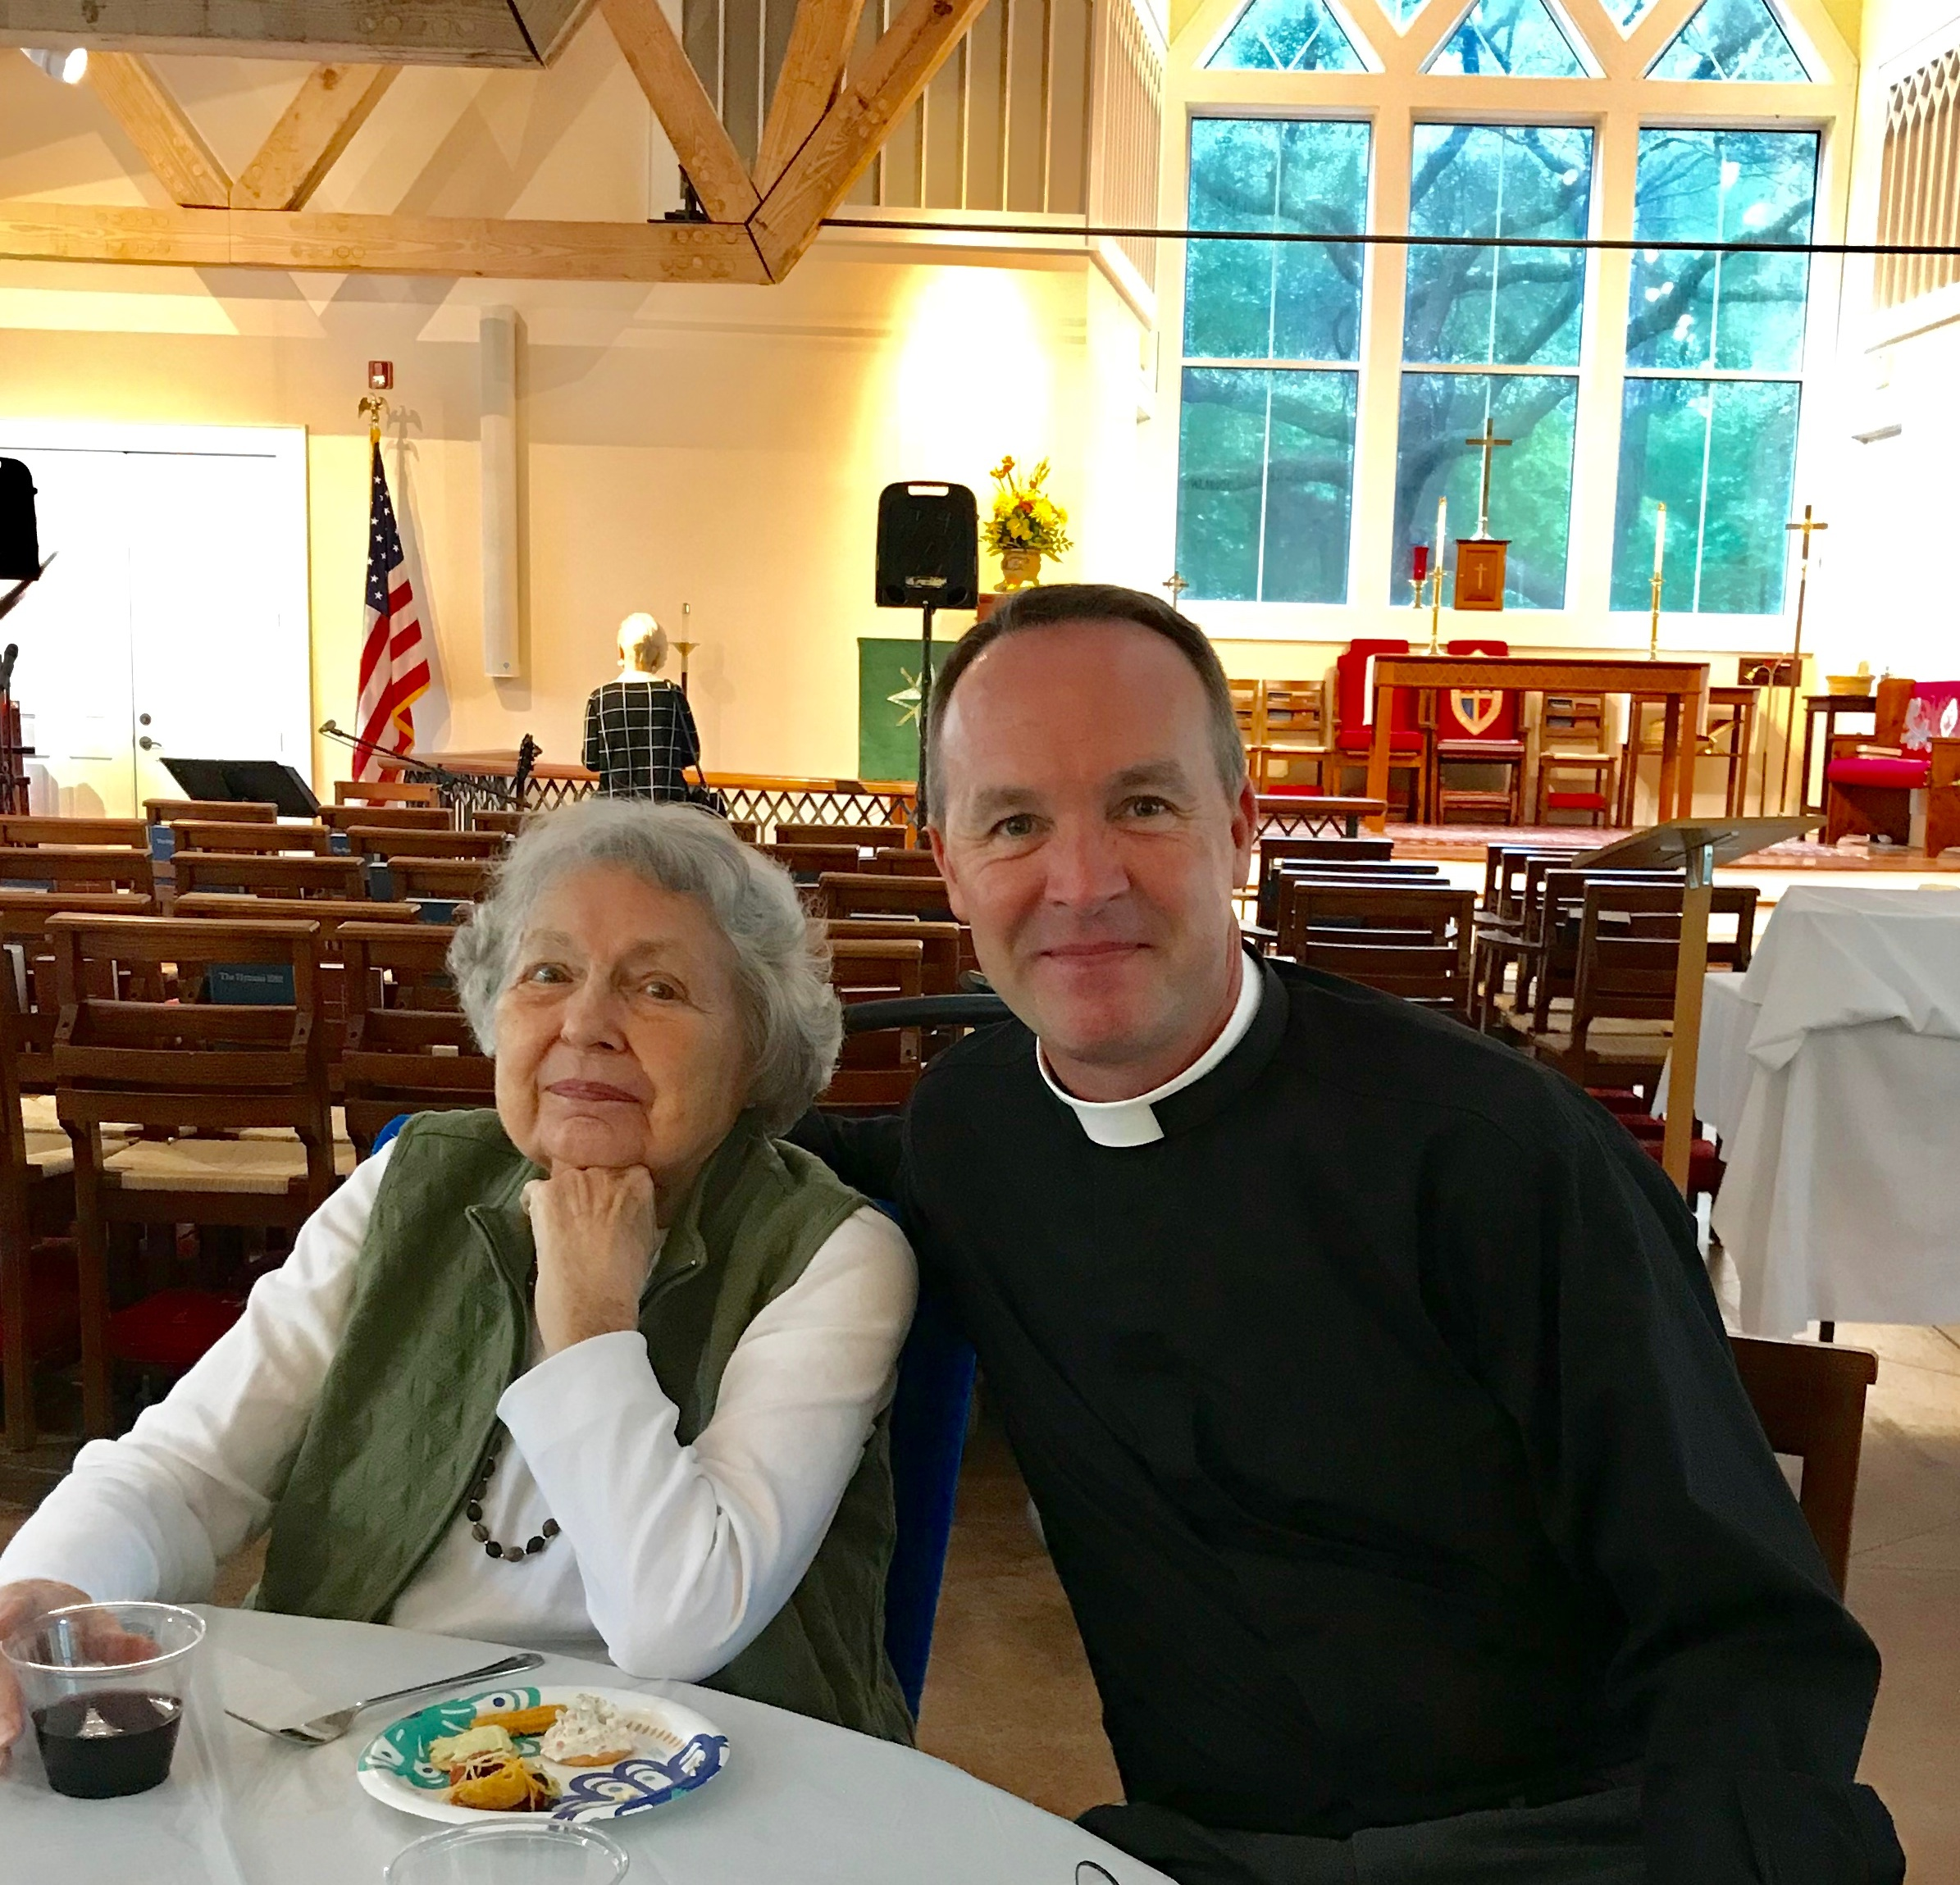 Mrs. Fenhagen with the Rev. Jason D. Roberson, former General student, now Assistant Rector at Holy Cross Faith Memorial Episcopal Church, her home parish on Pawley's Island, South Carolina.